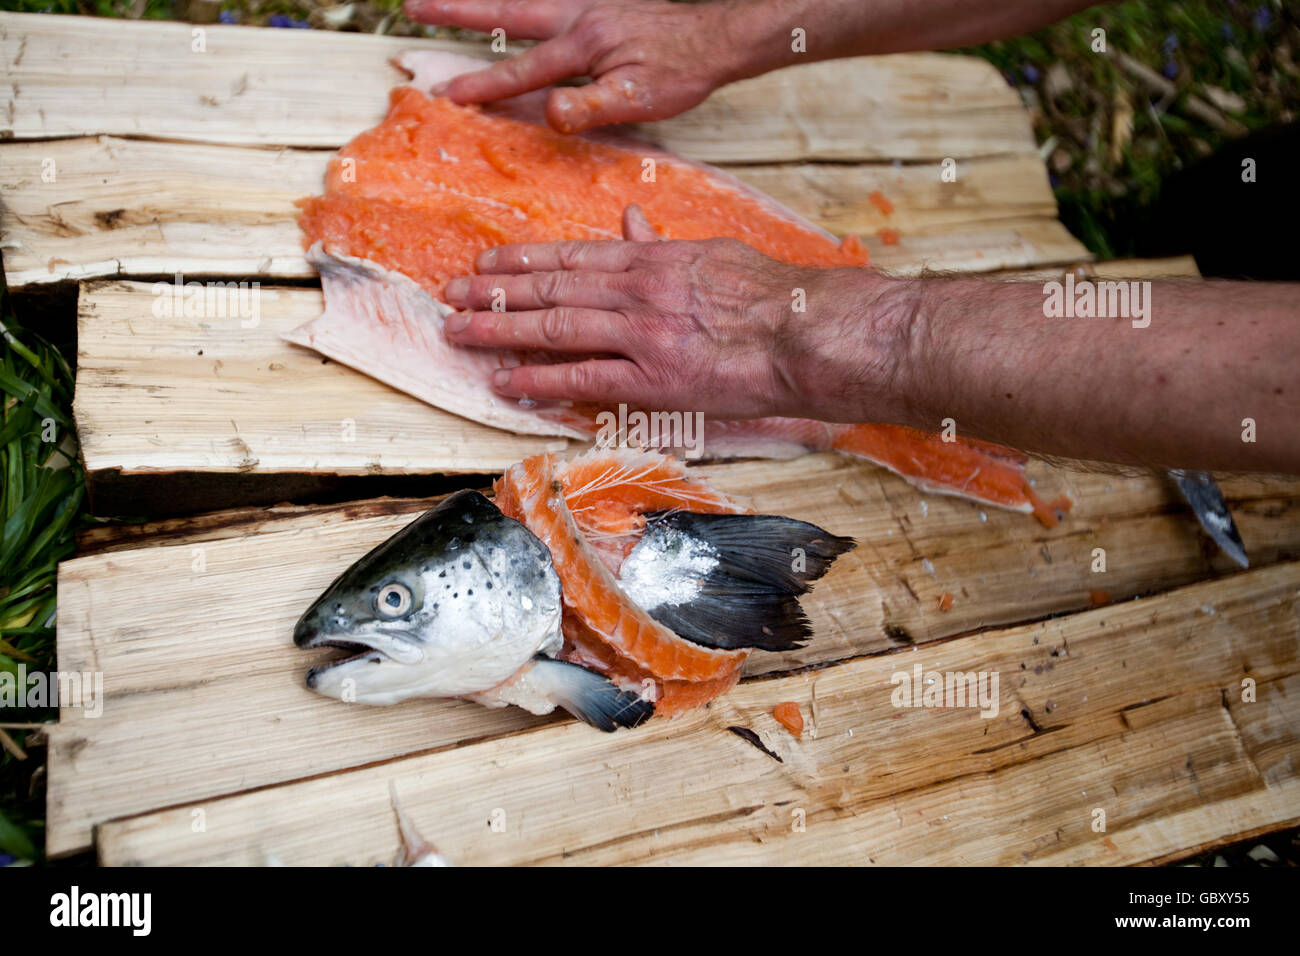 Bushcraft Salmon cooking - Stock Image